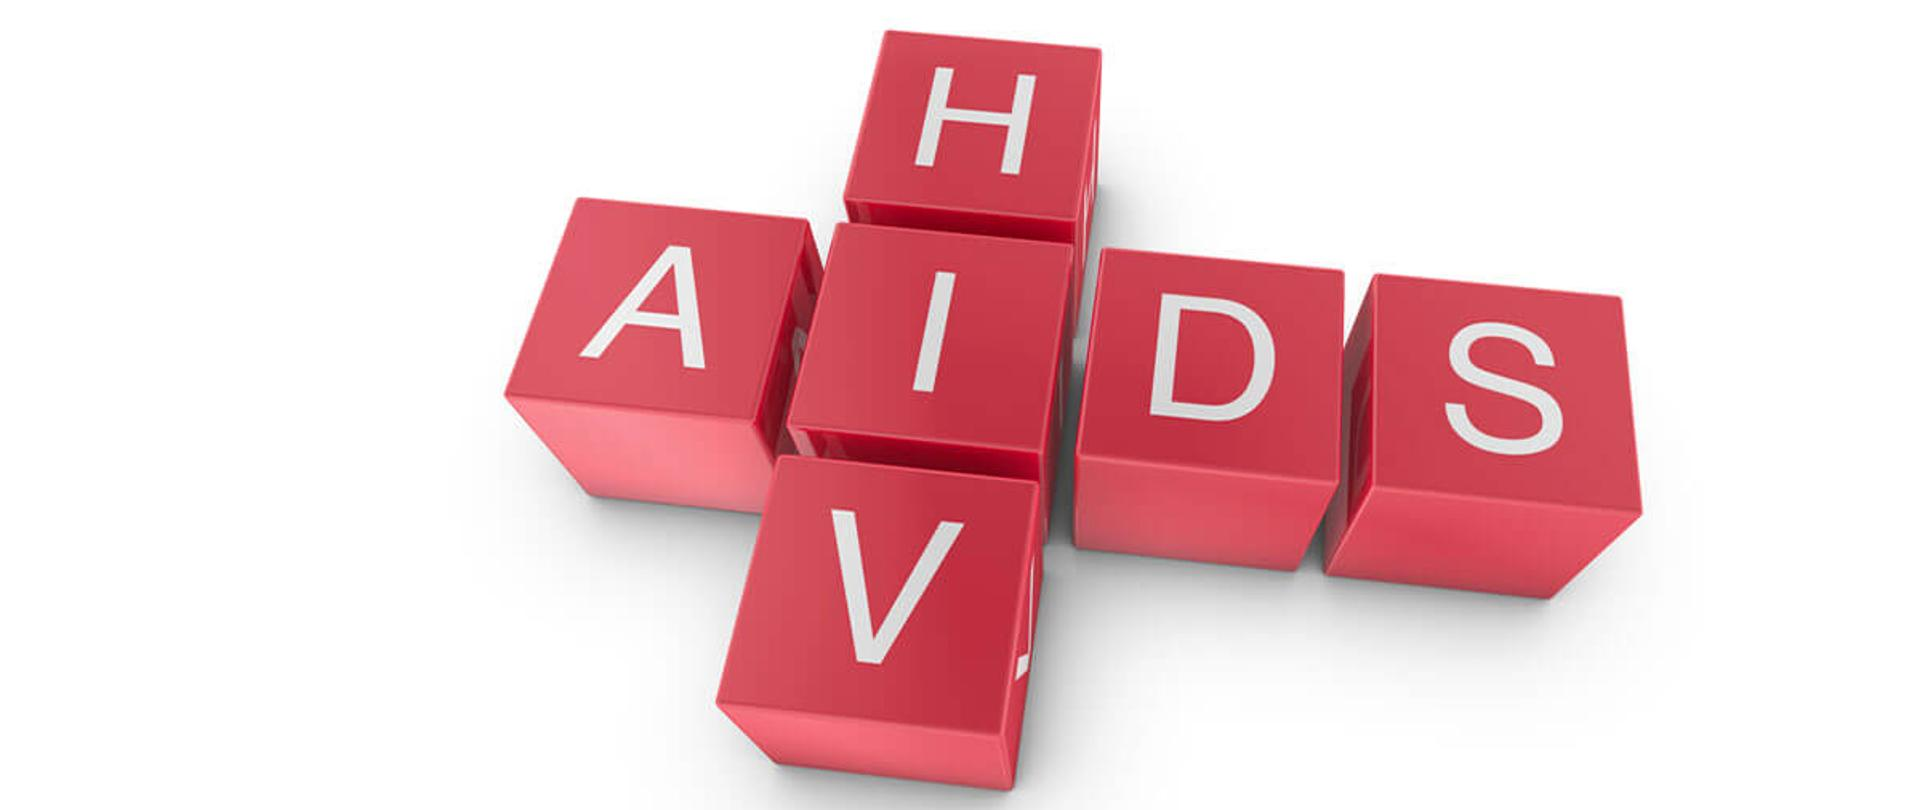 How to reduce the risk of HIV infection?